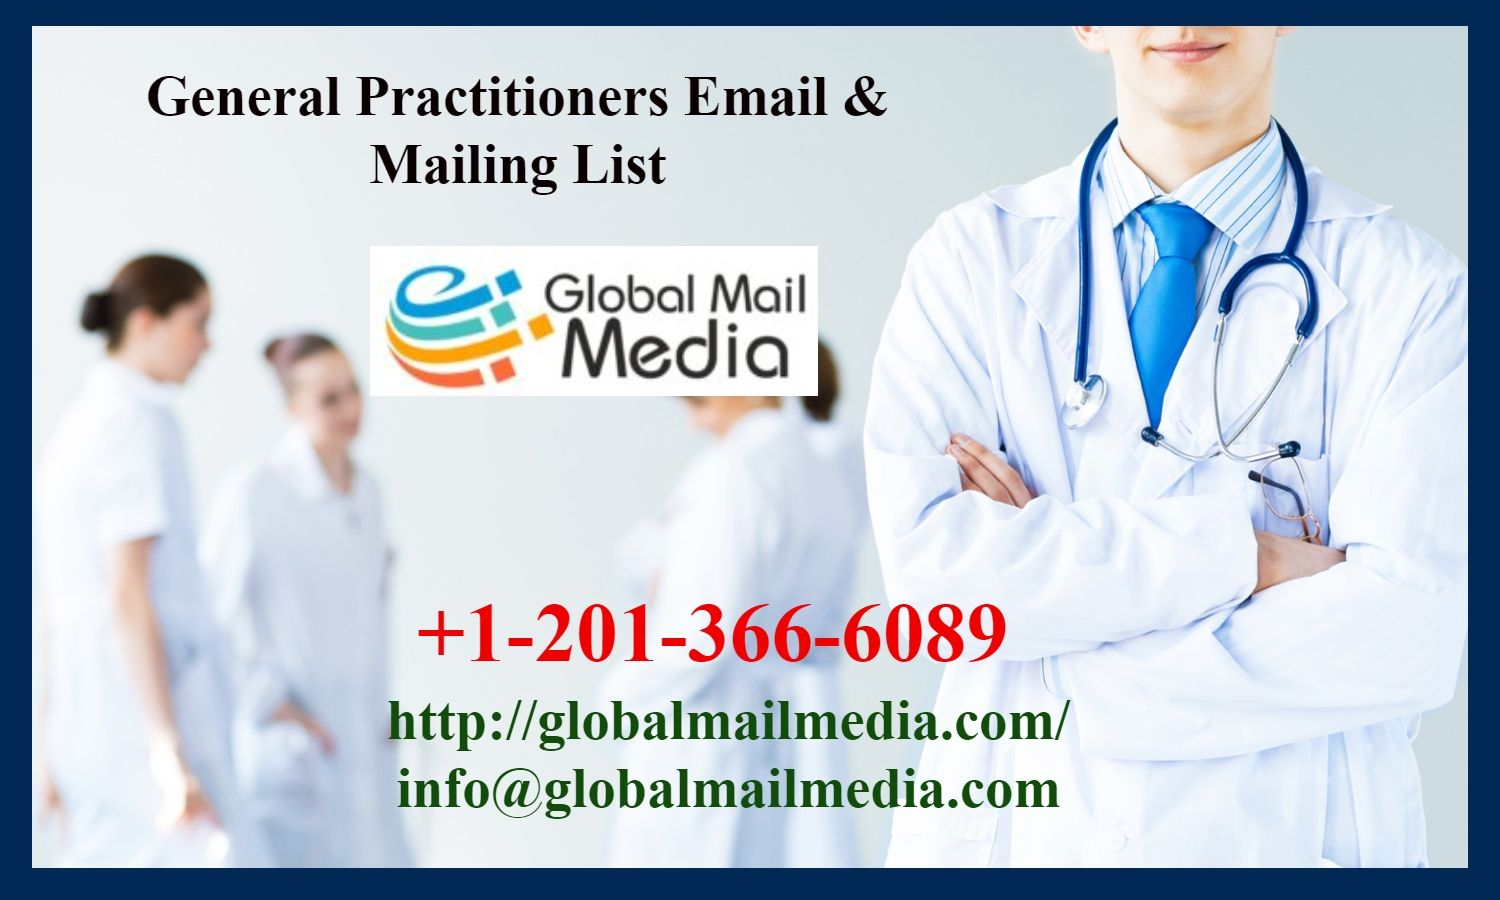 General Practitioners Email & Mailing List B2b marketing